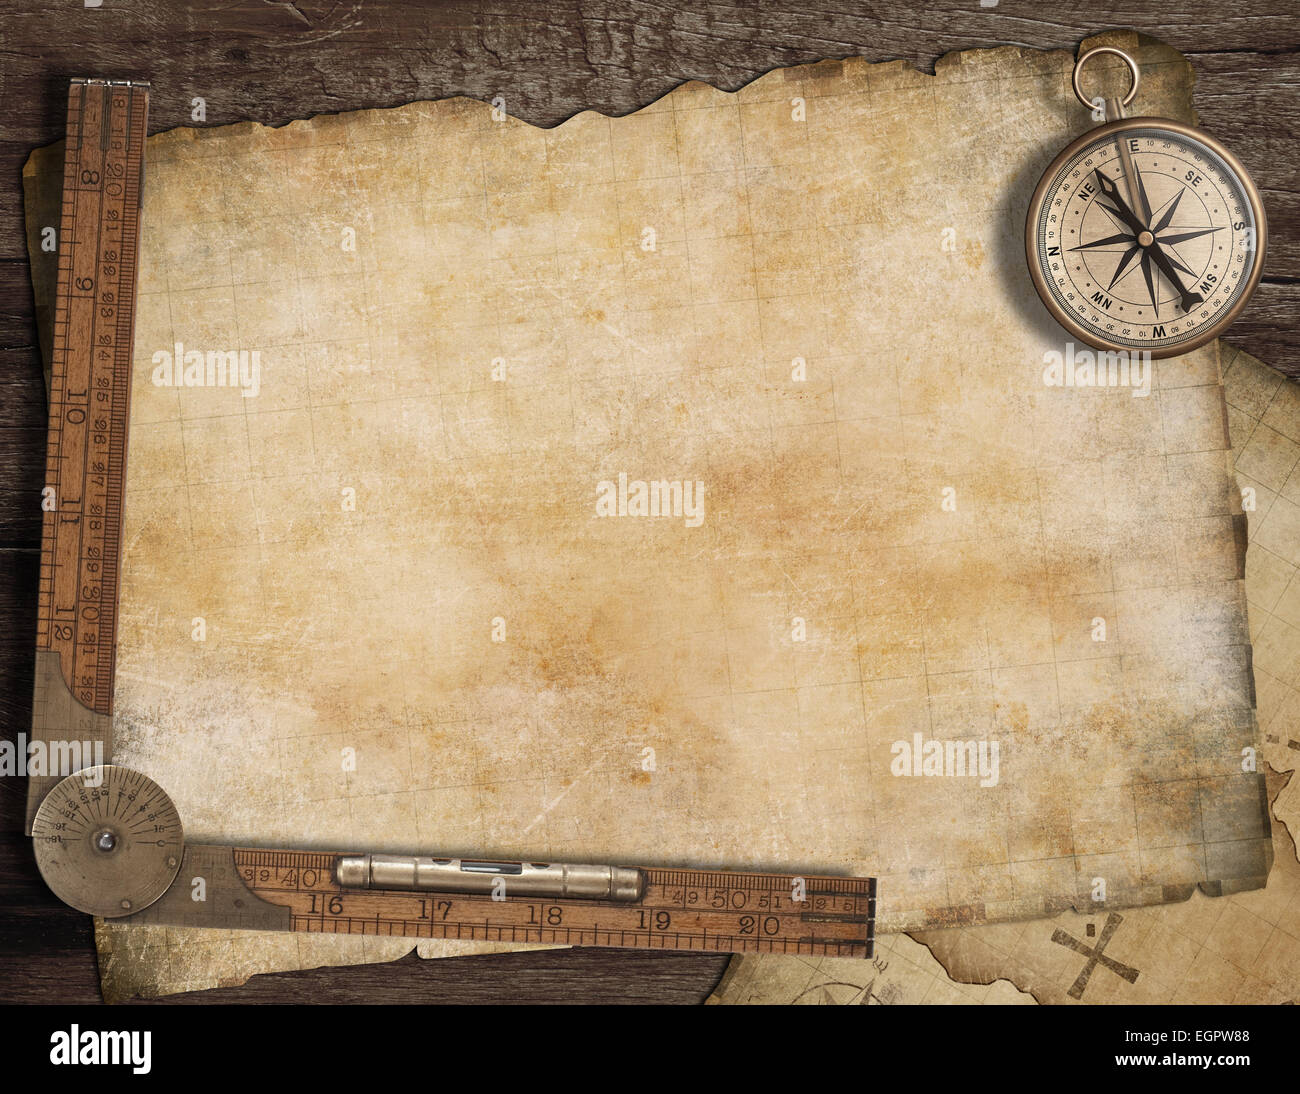 Blank Treasure Map Background With Old Compass And Ruler Adventure Egpw